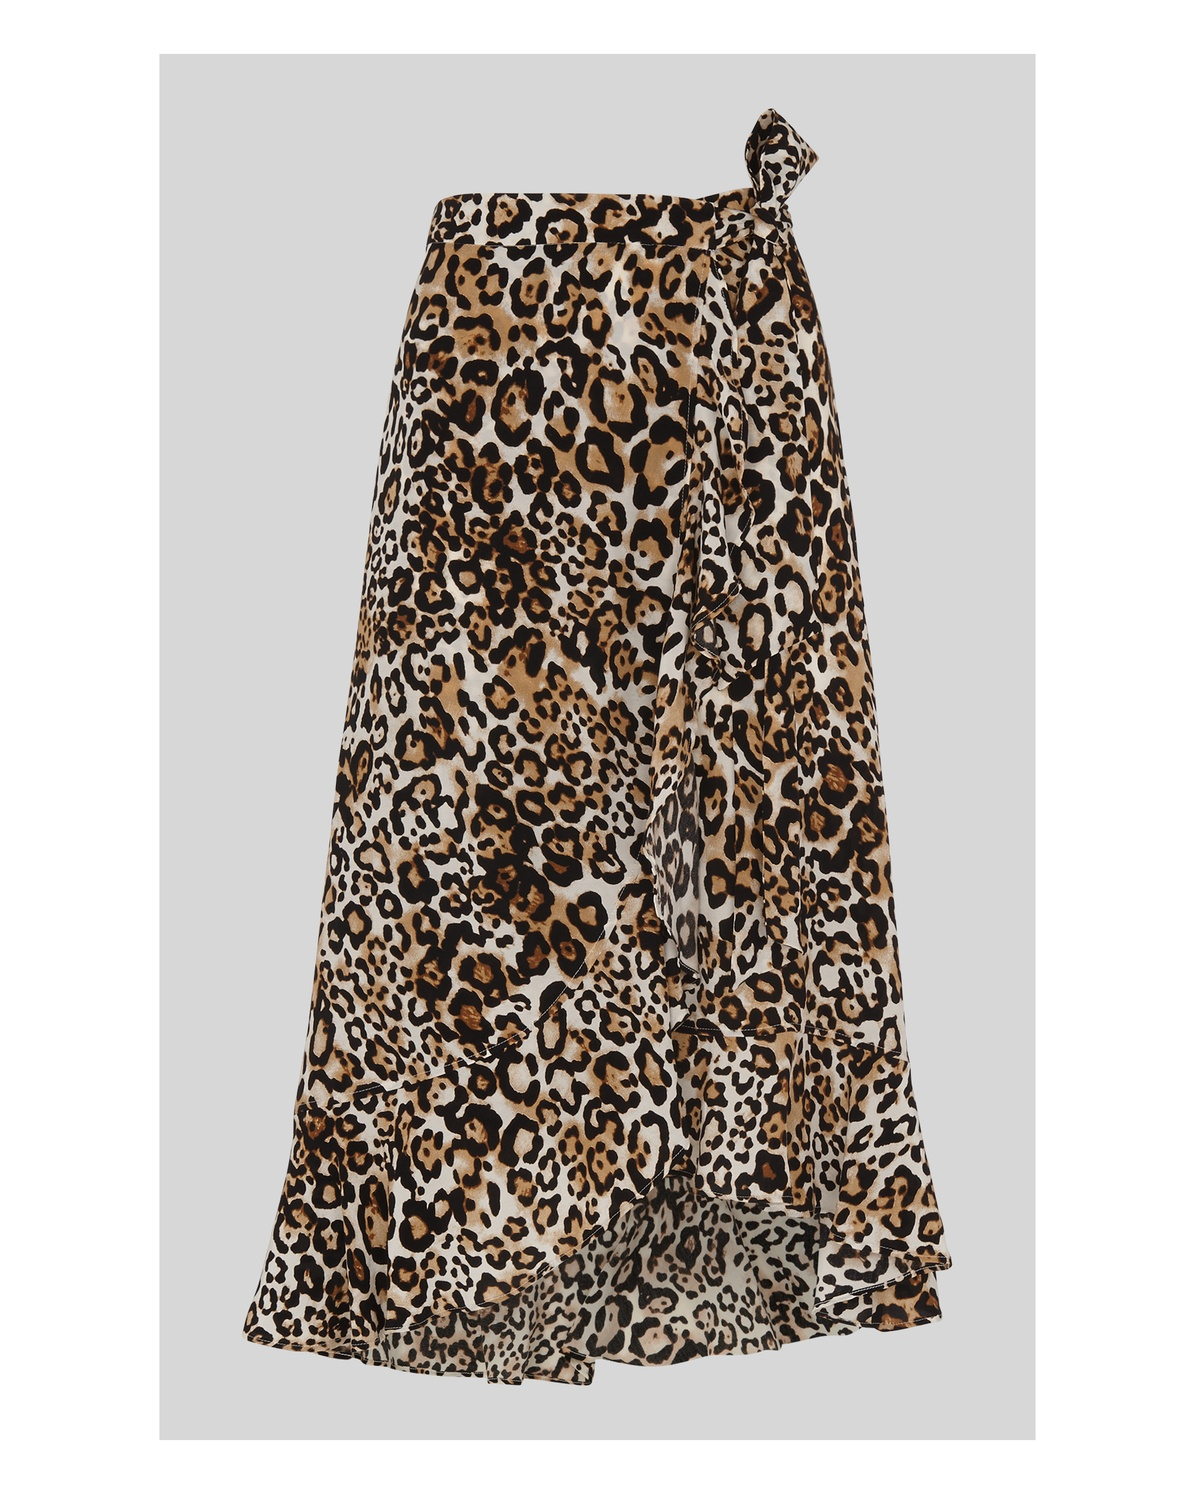 faa454810d15 Animal Print Frill Wrap Skirt | Endource